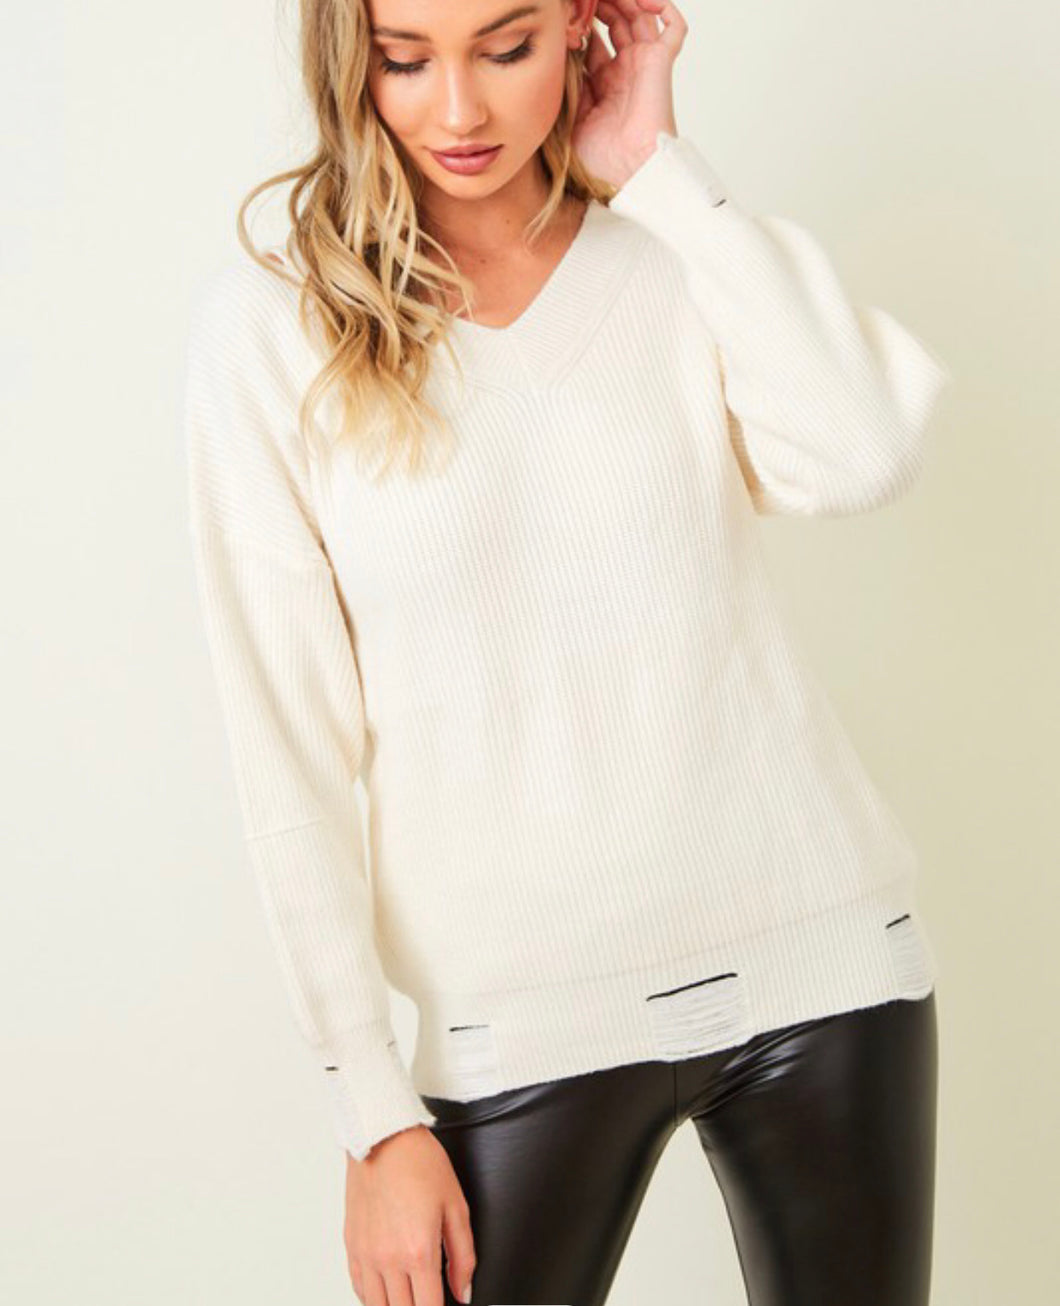 Lightly Distressed Sweater w/ Cut out Shoulder - Ivory